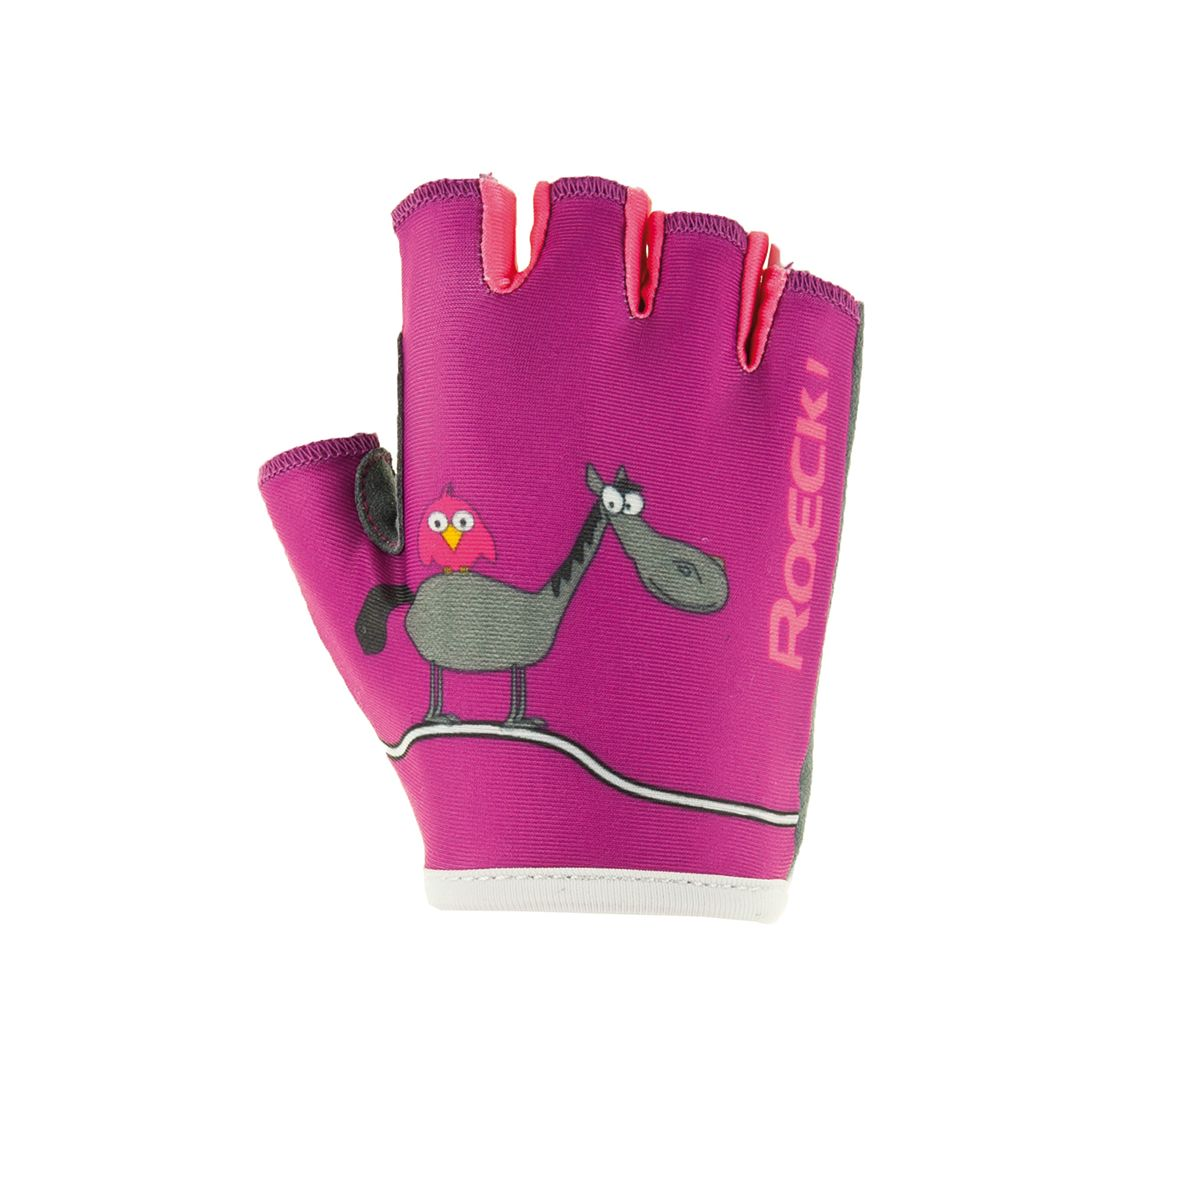 TORO kids' cycling gloves